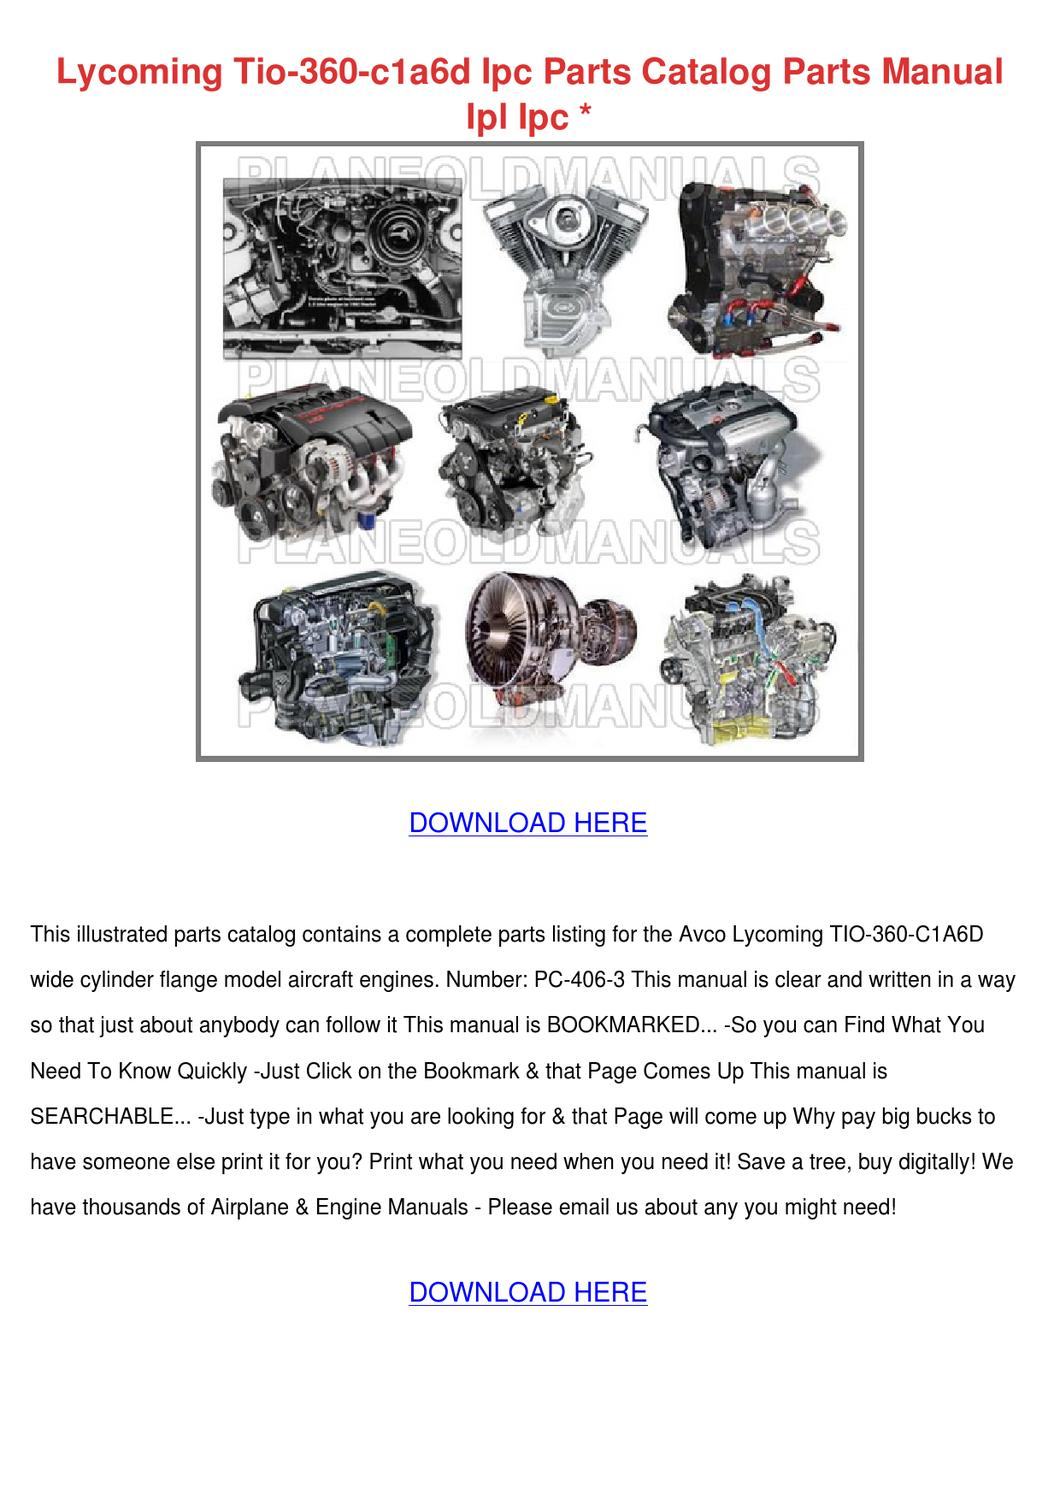 Lycoming Tio 360 C1a6d Ipc Parts Catalog Part by Asia Hafter - issuu